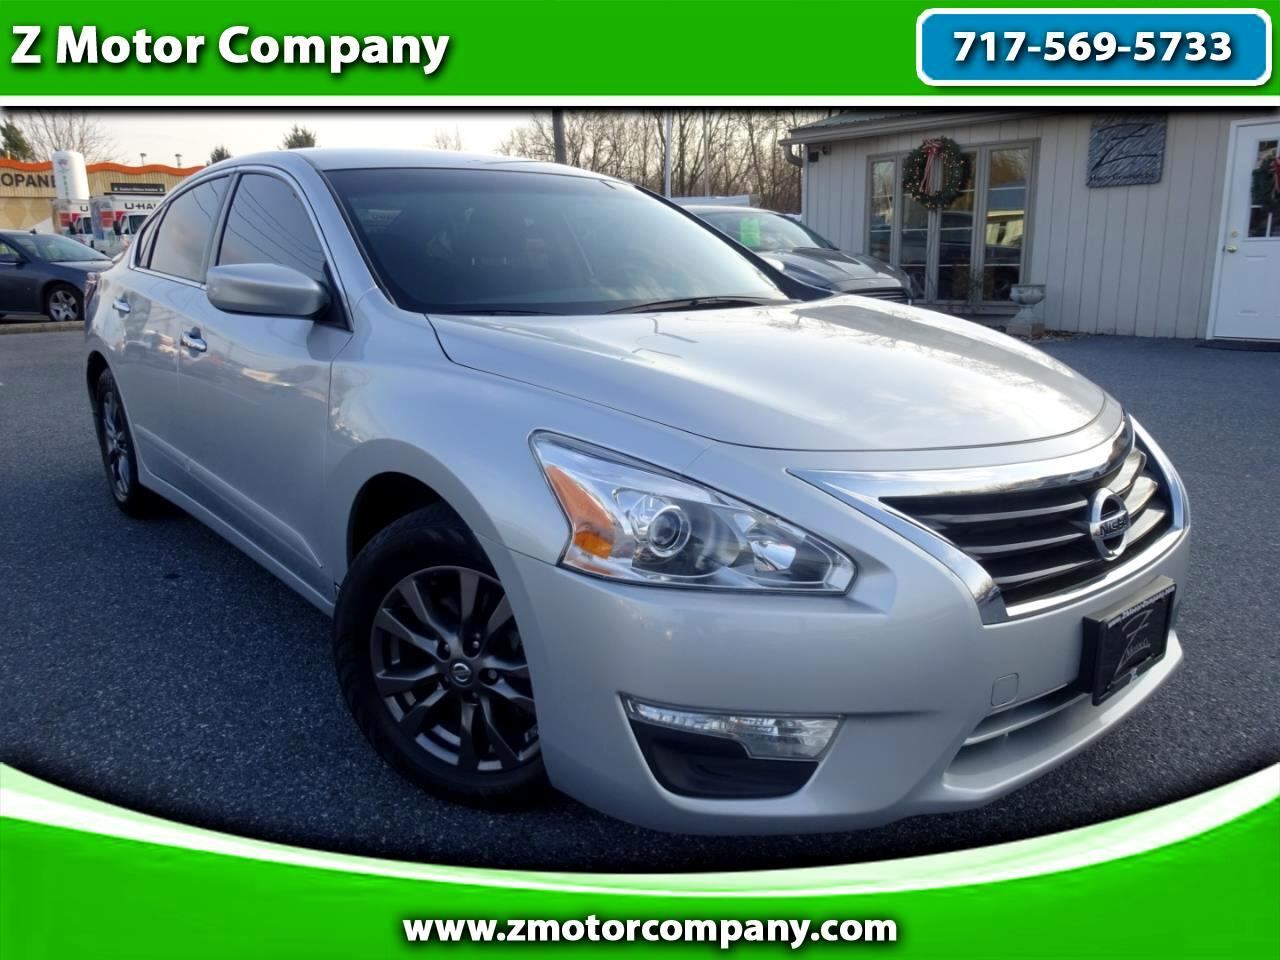 2015 Nissan Altima 2,5 S Special Edition